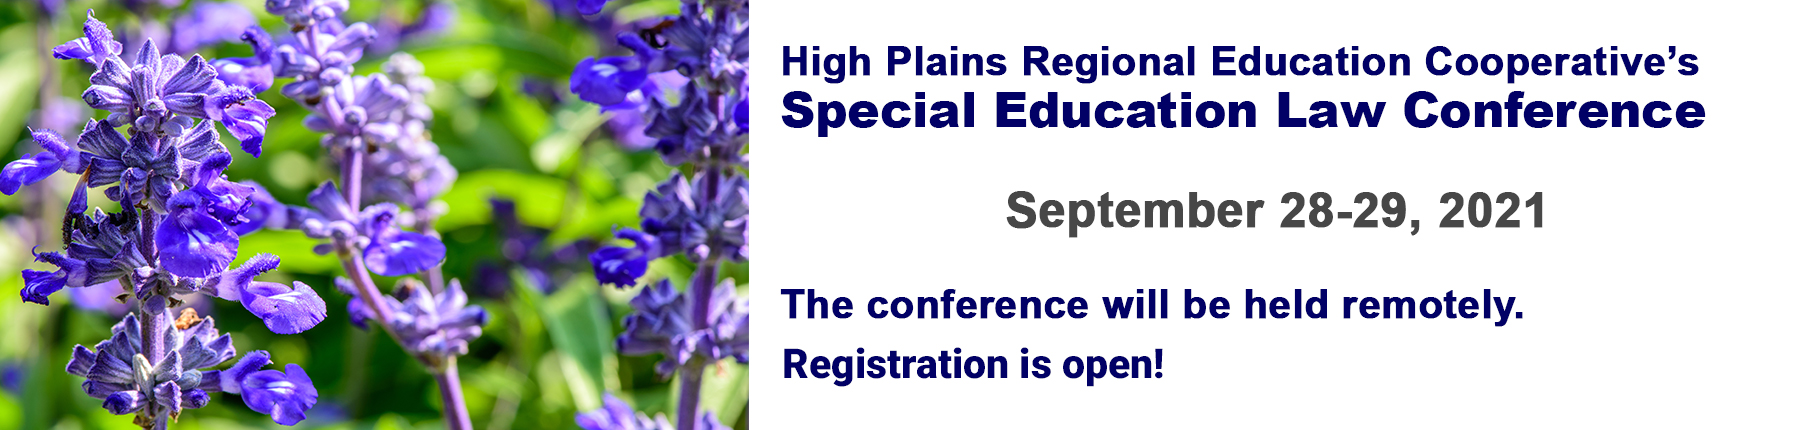 Special Education Law Conference- We look forward to seeing you at the September 2021 Conference!